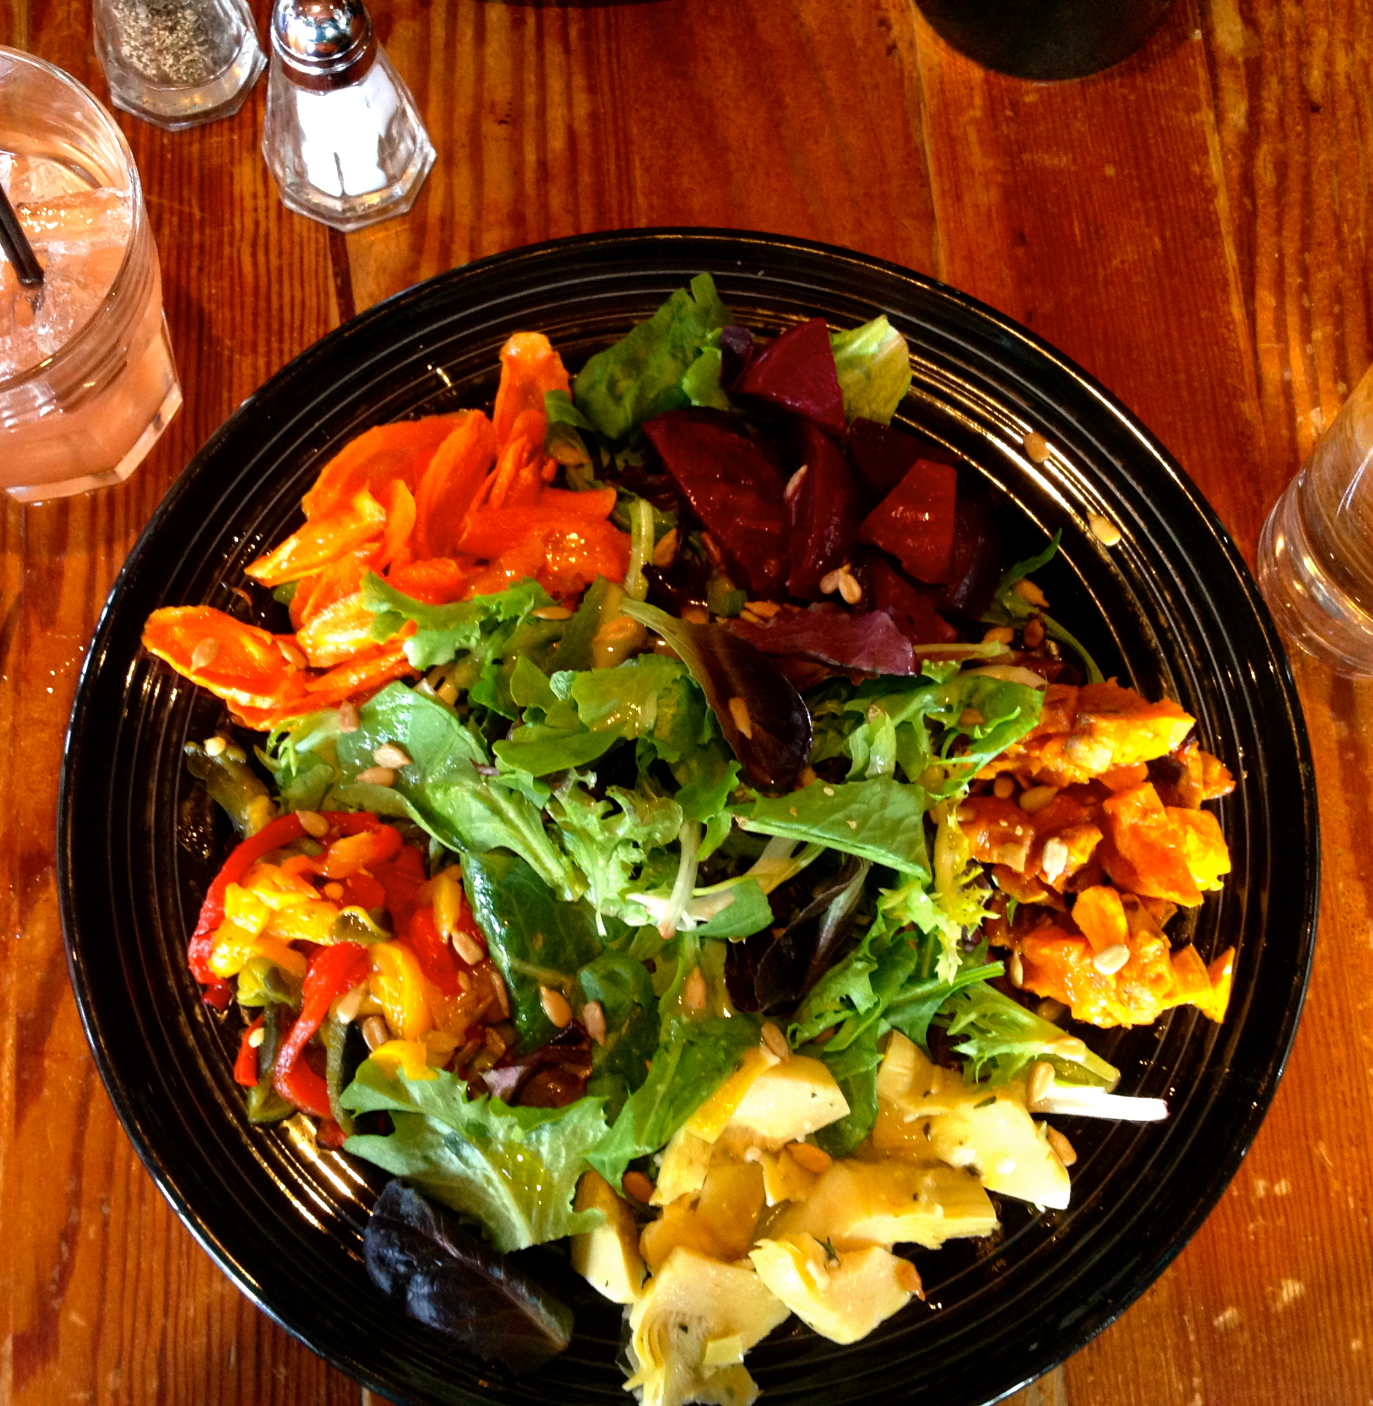 Roasted Veggie Salad, The Weary Traveler, Madison, WI